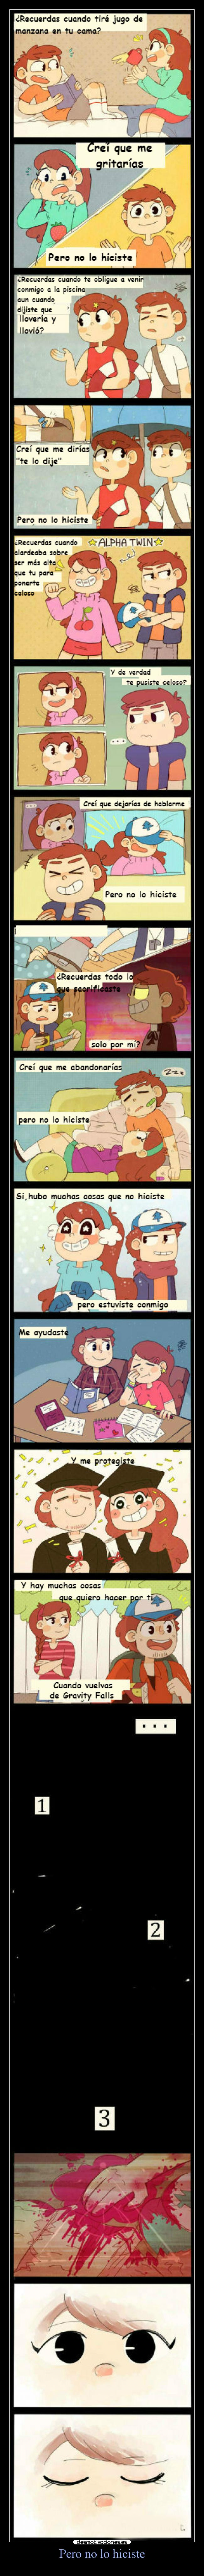 carteles amor hermanos dipper mabel dipperpines mabelpines gravity falls gravityfalls hiciste desmotivaciones